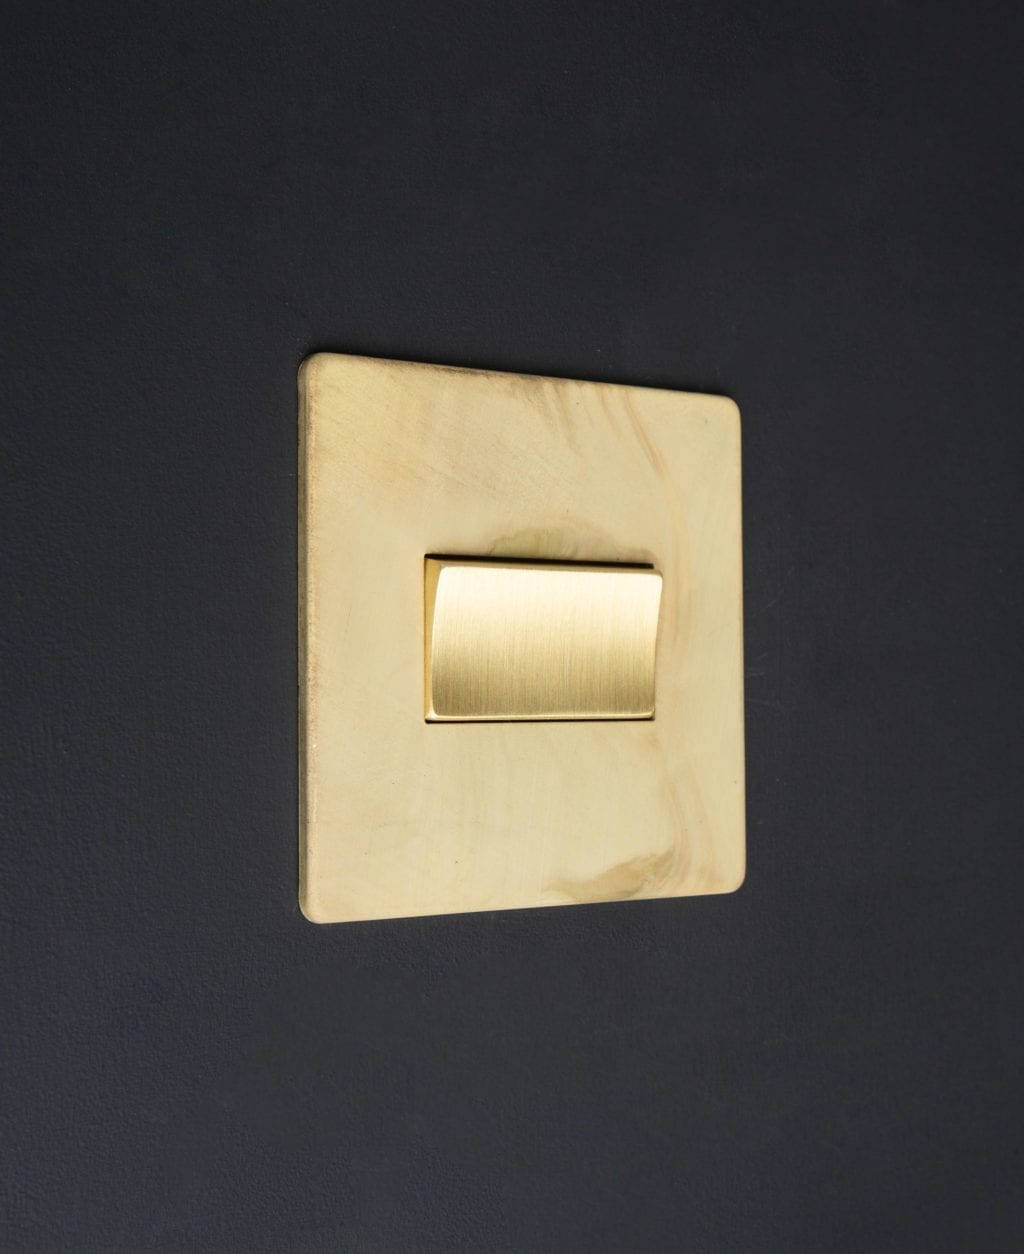 smoked gold and gold fan switch against black background